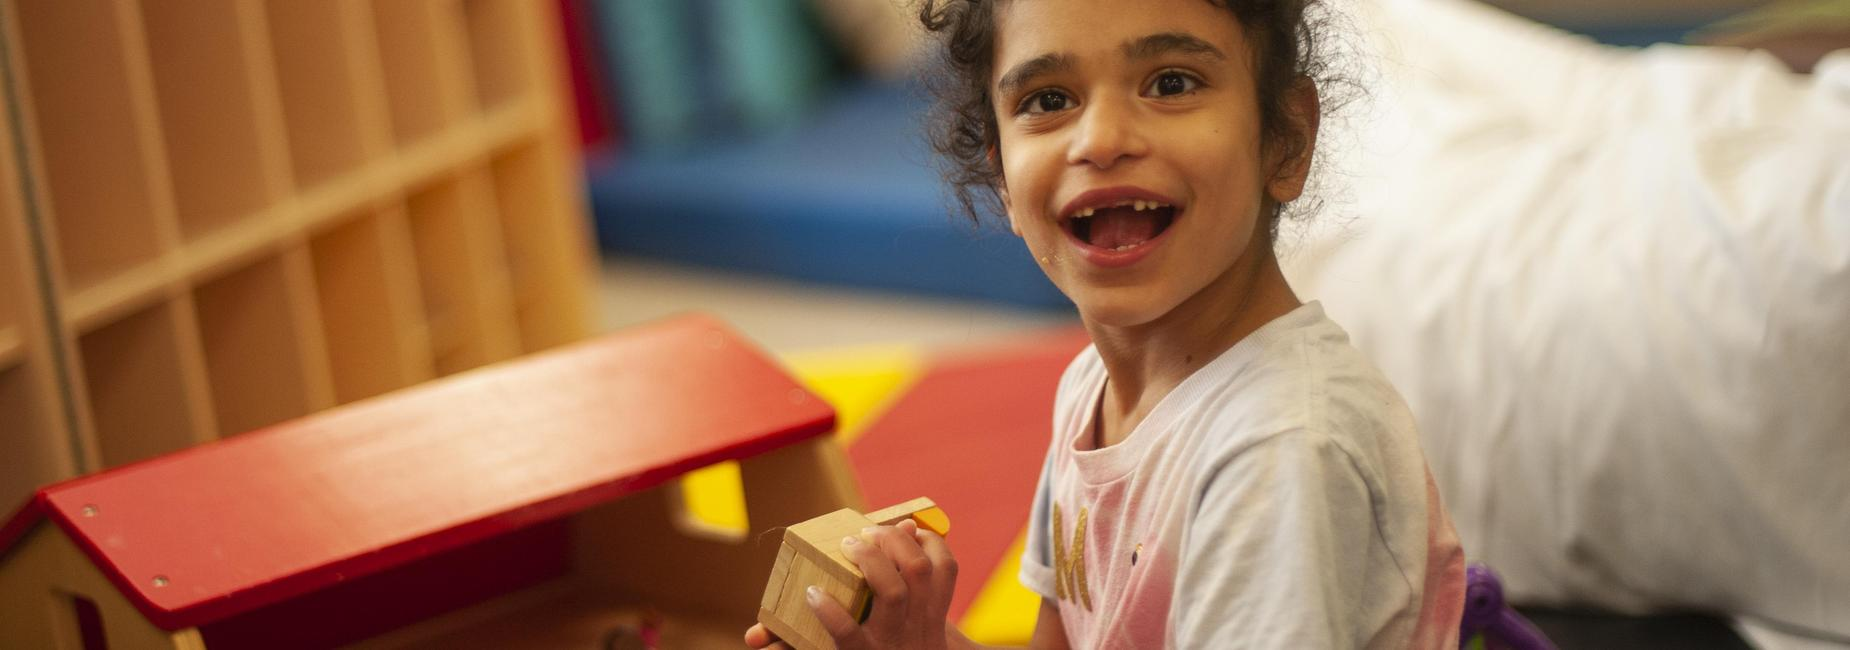 Student in middle program plays with wooden blocks.